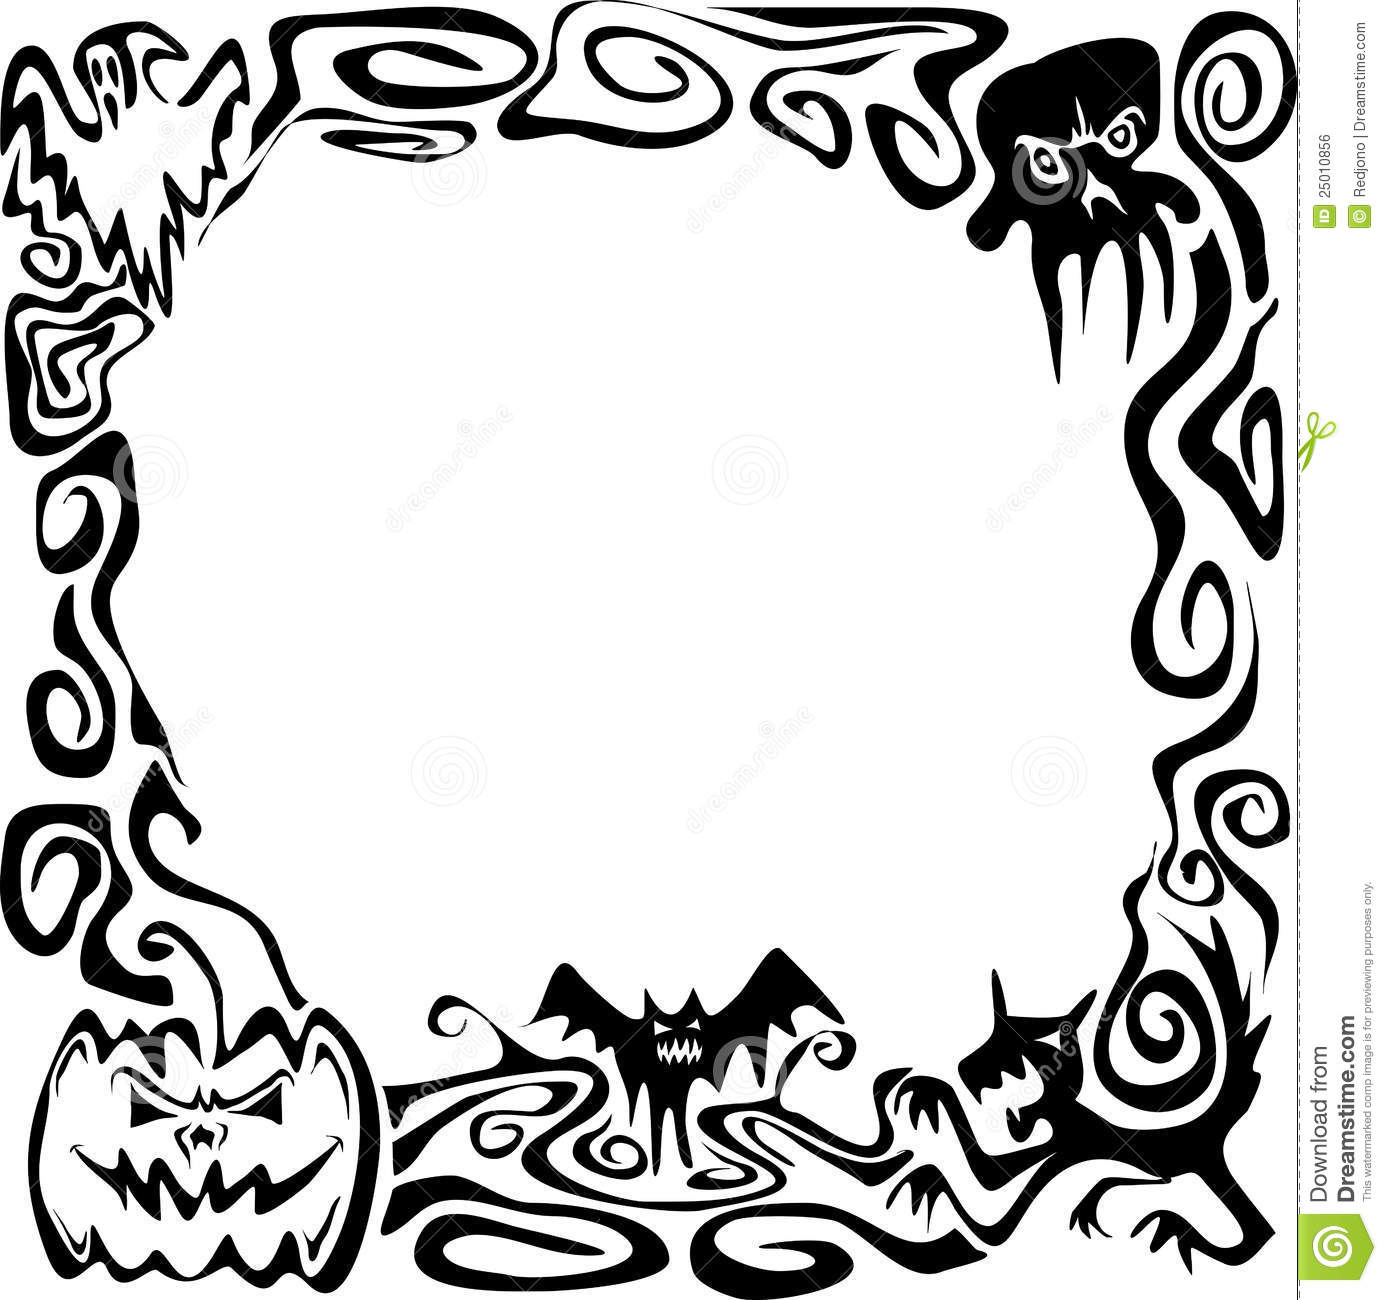 1387x1300 Halloween Border Black And White Photo Album